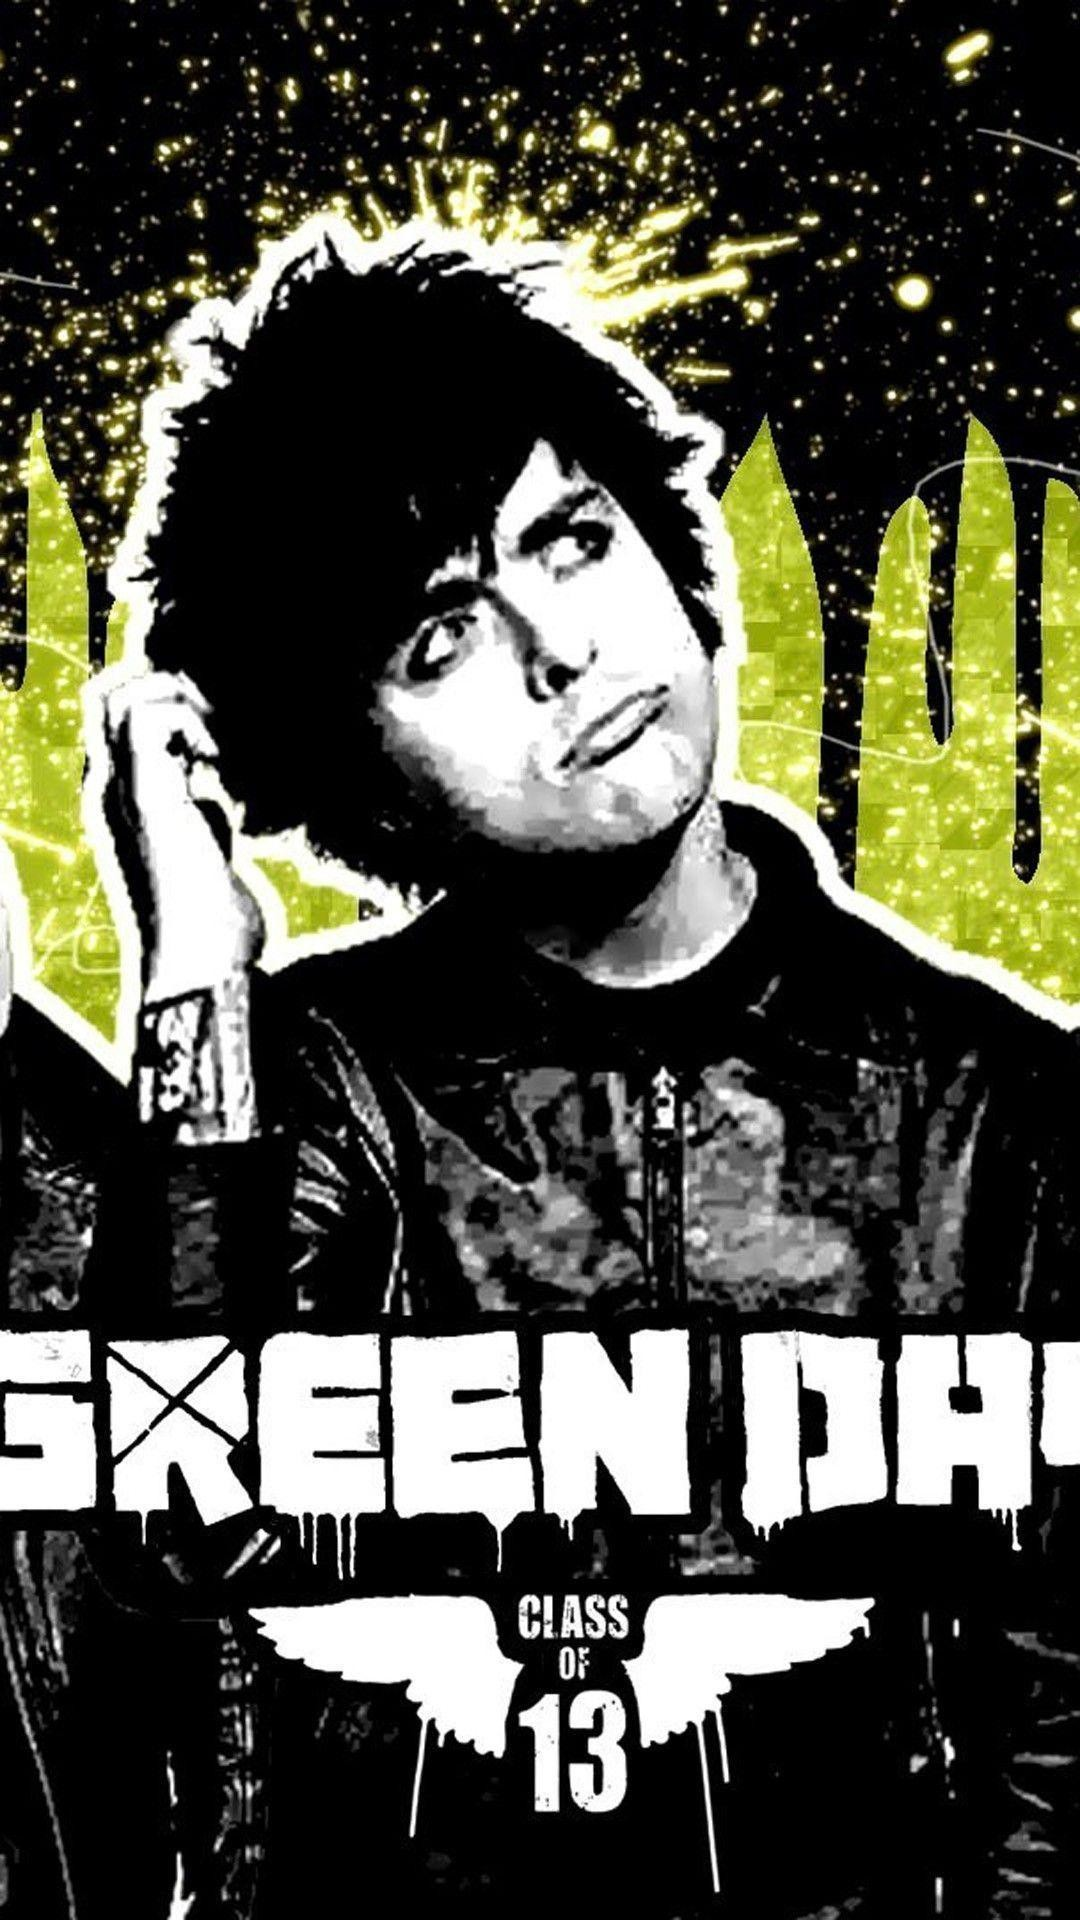 Green Day Iphone Wallpaper Hd 45 Images